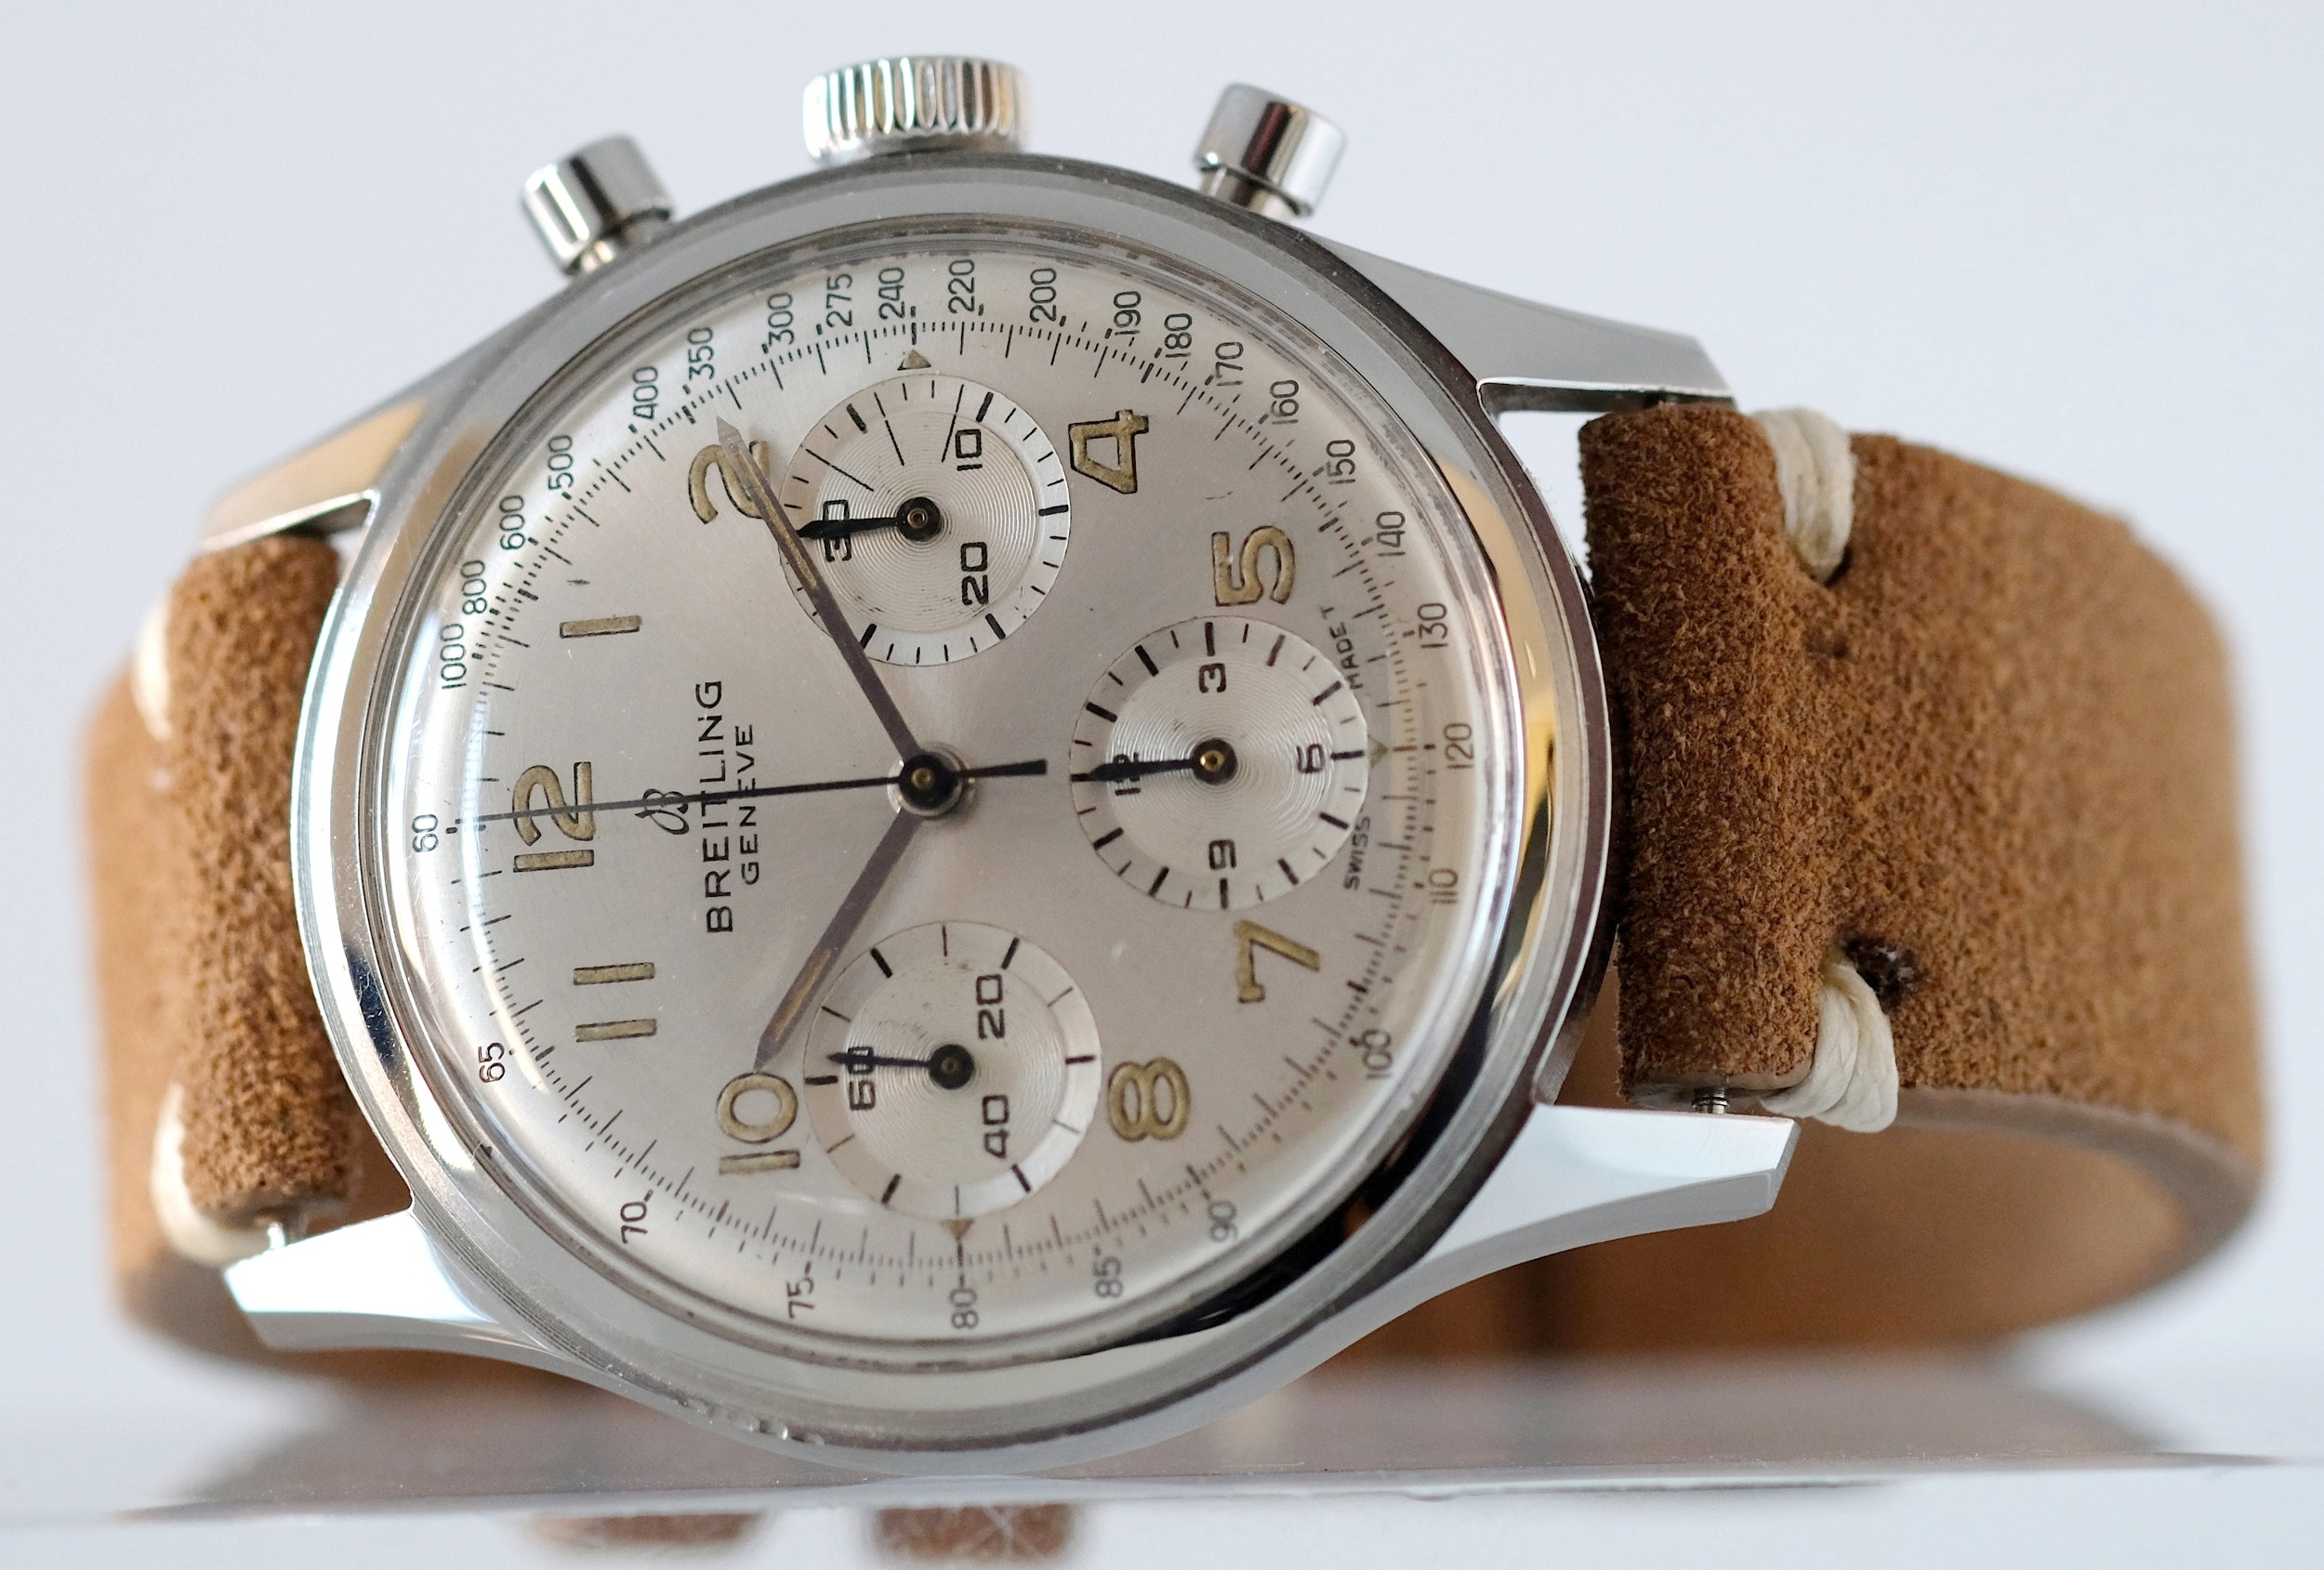 Breitling Silver dial Chronograph Ref. 765  SOLD